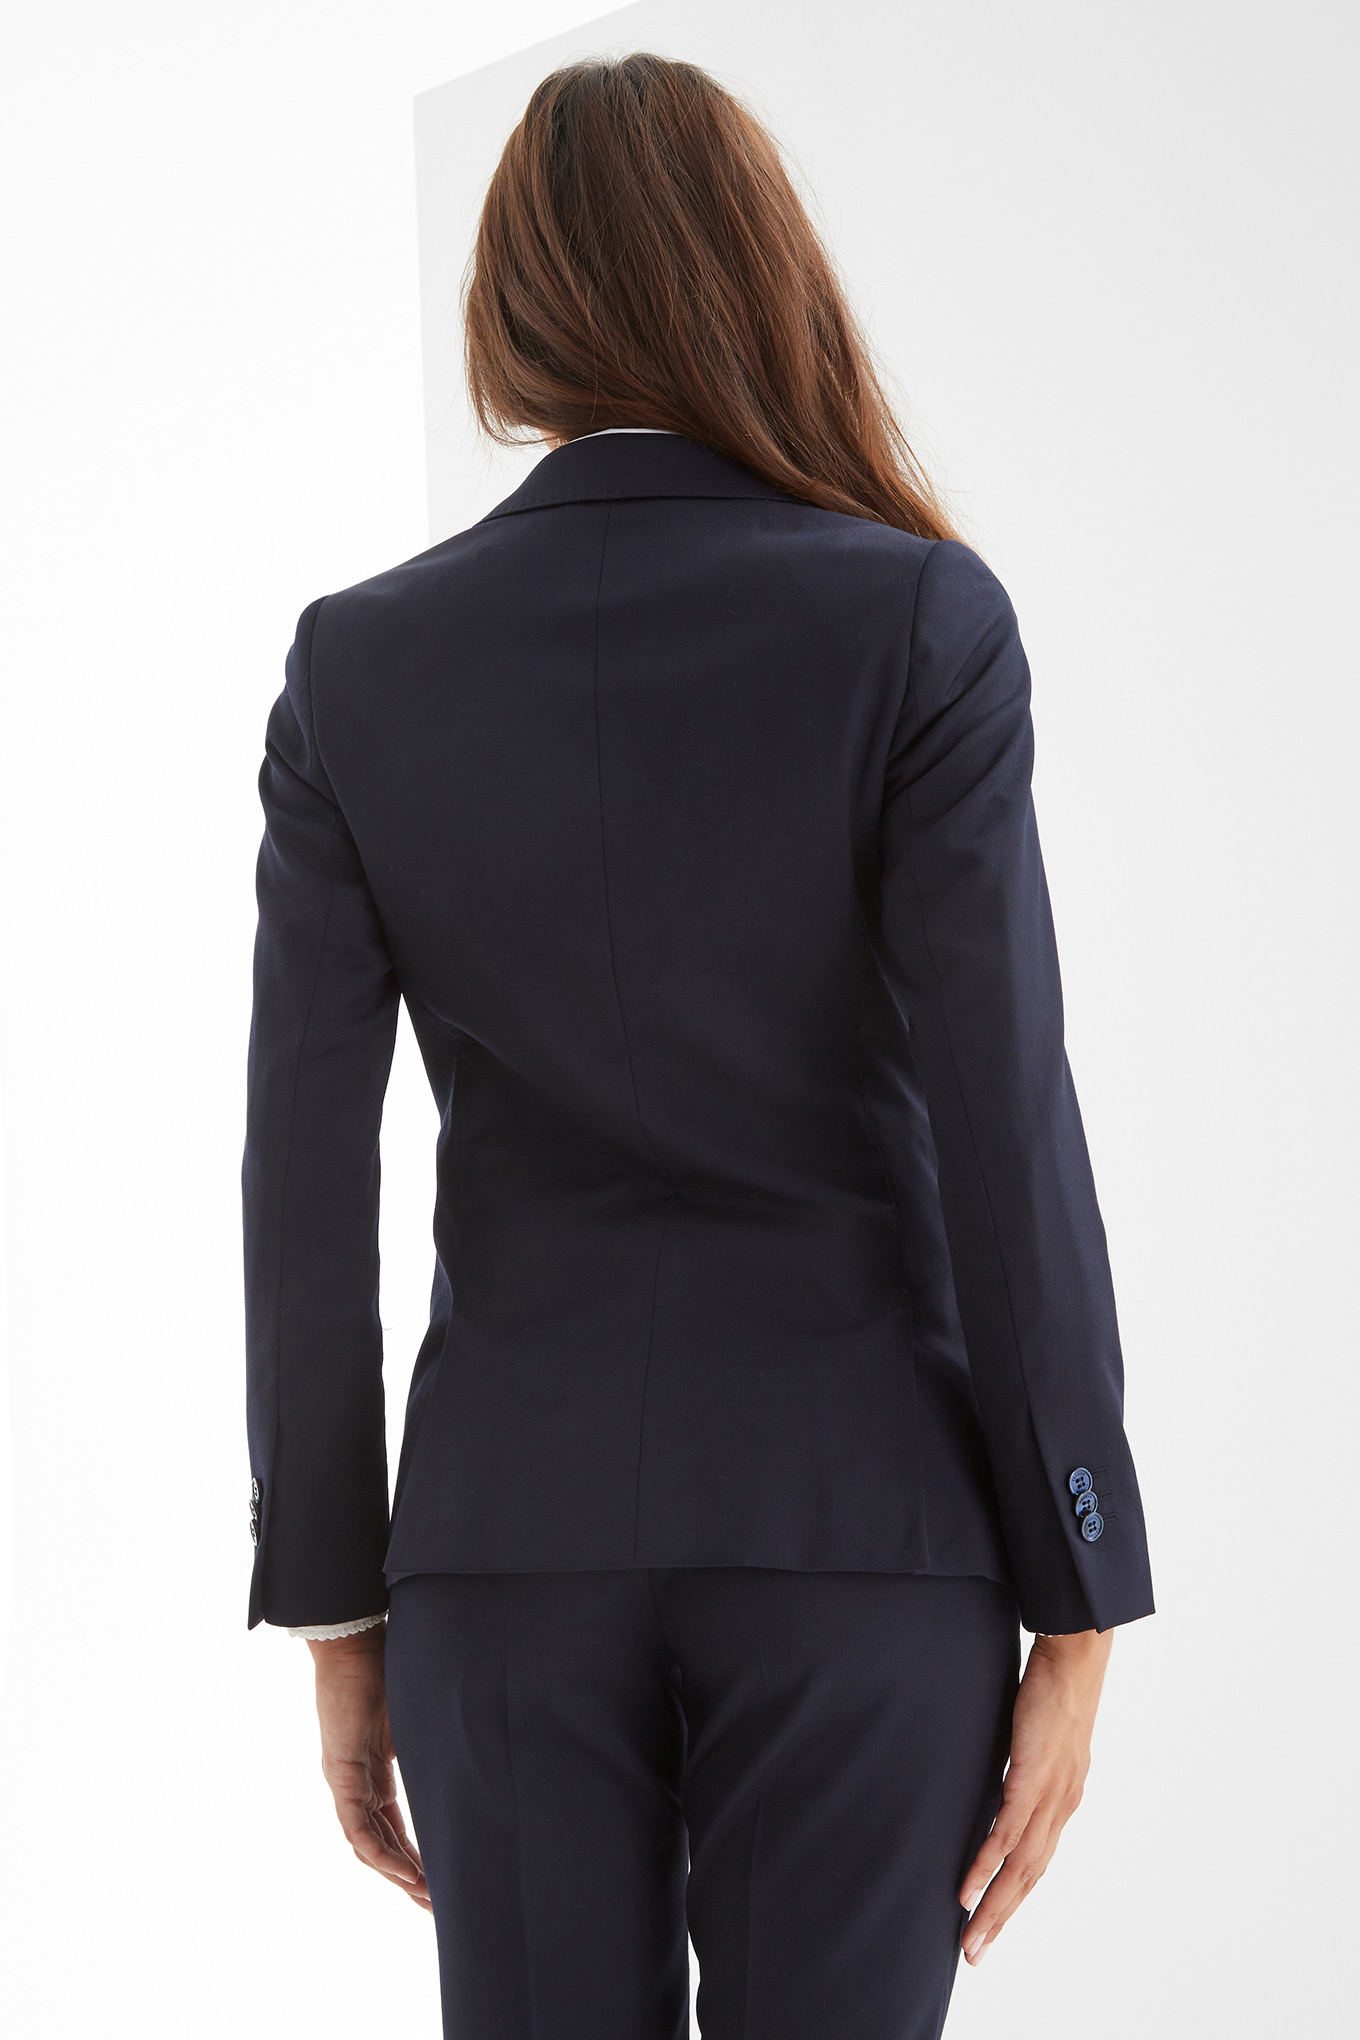 Suit Dark Blue Classic Woman